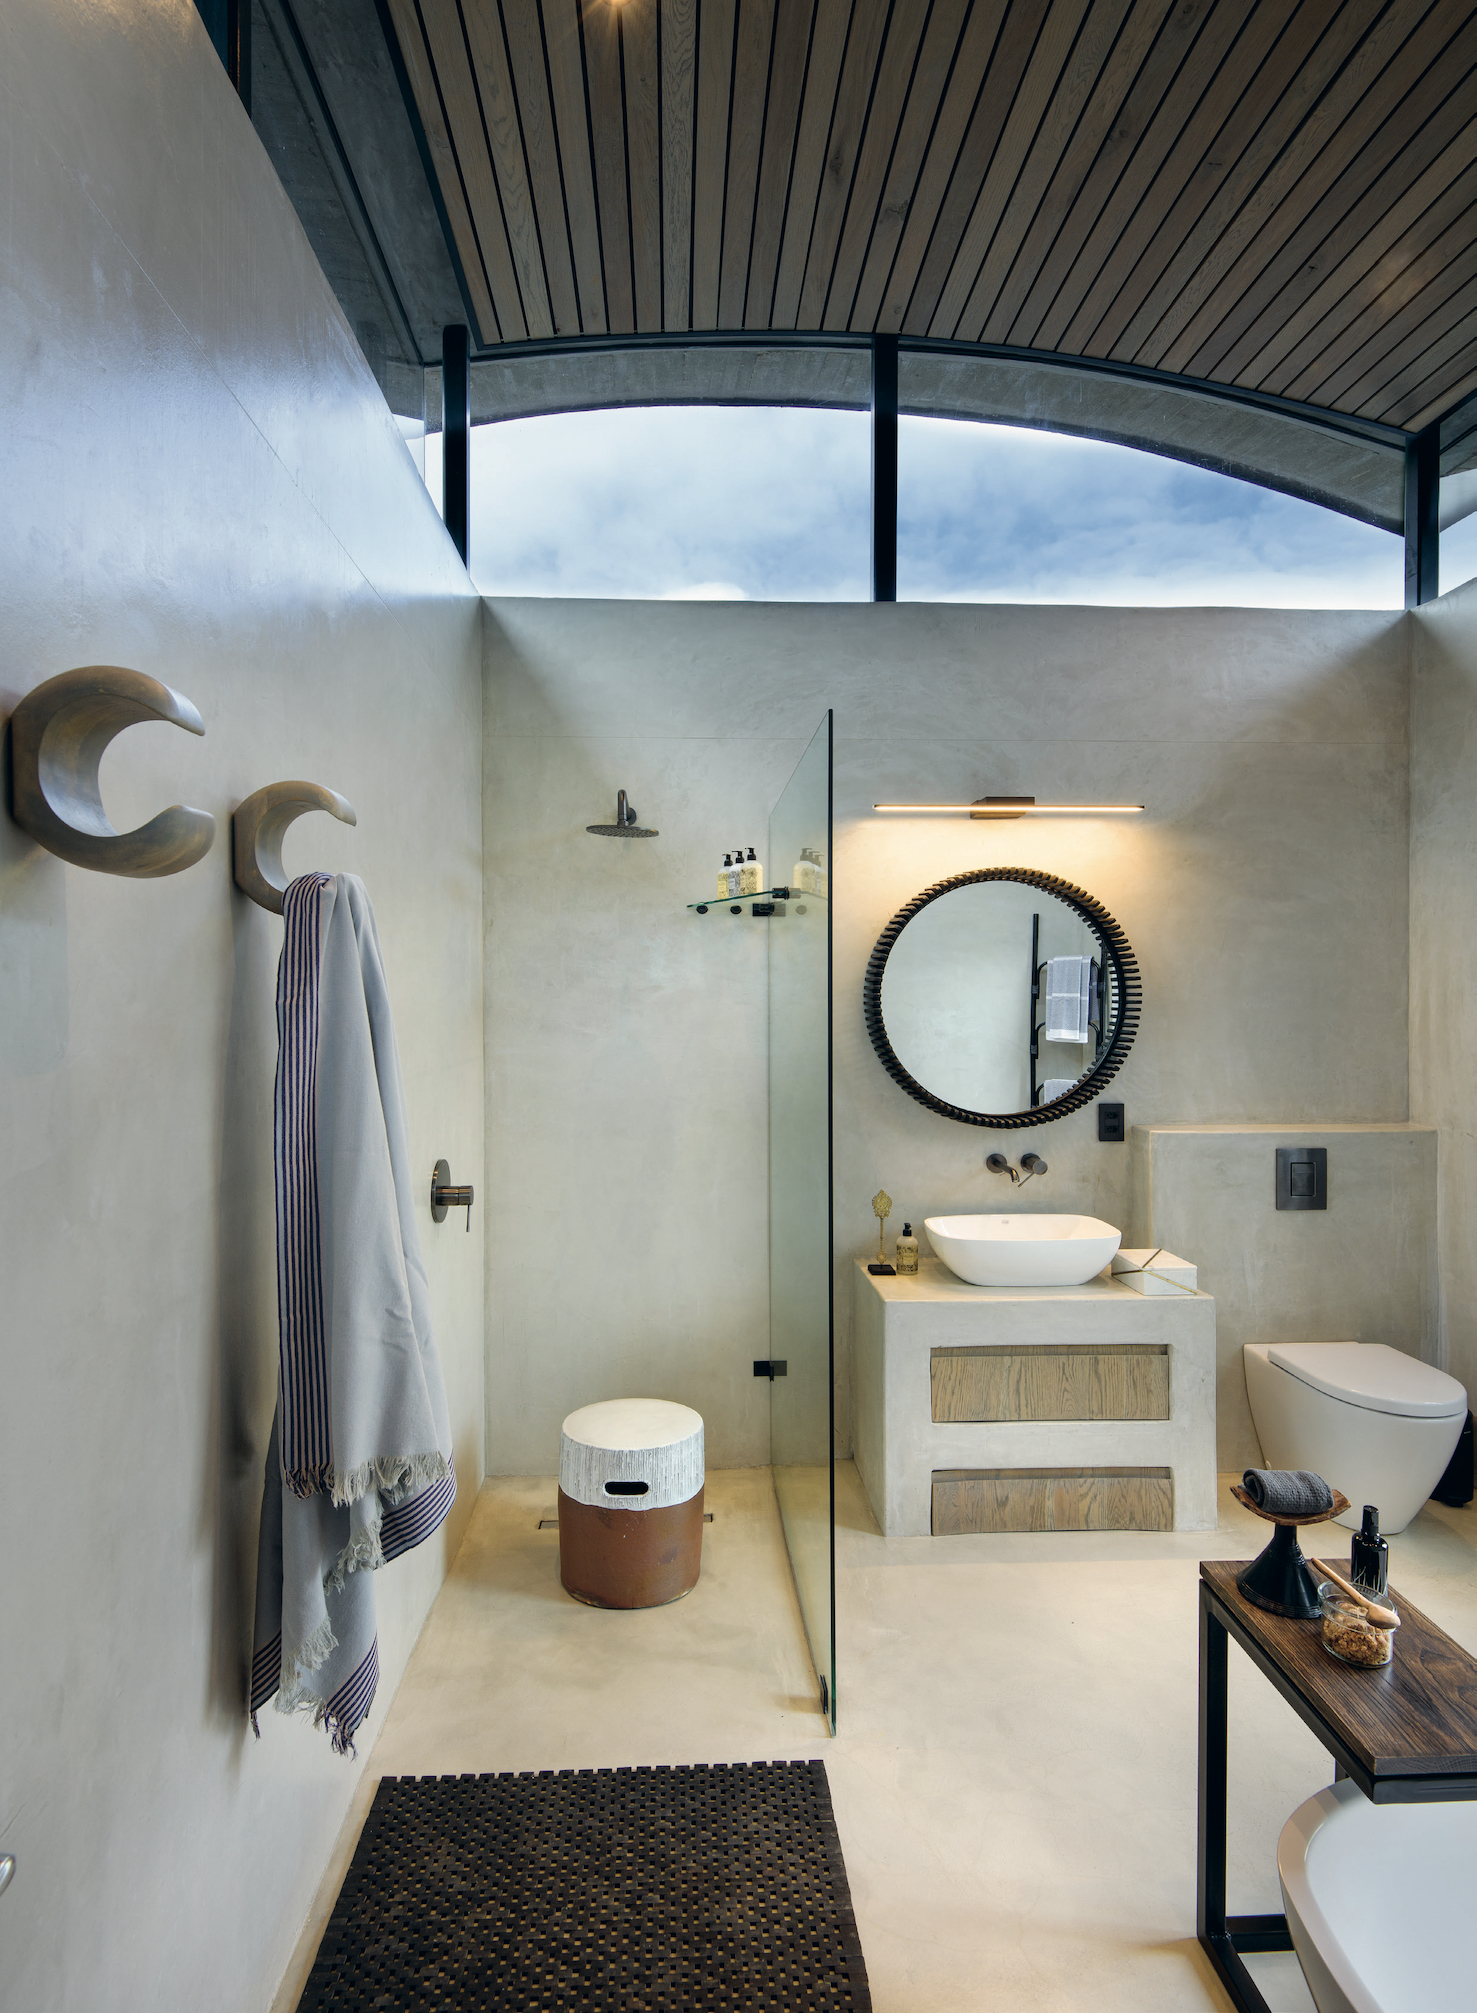 The en-suite bathrooms were designed in neutral tones, with tons of windows to continue the connection to the outdoors. Repeating the cattle theme, the towel hooks are inspired by cow horns.